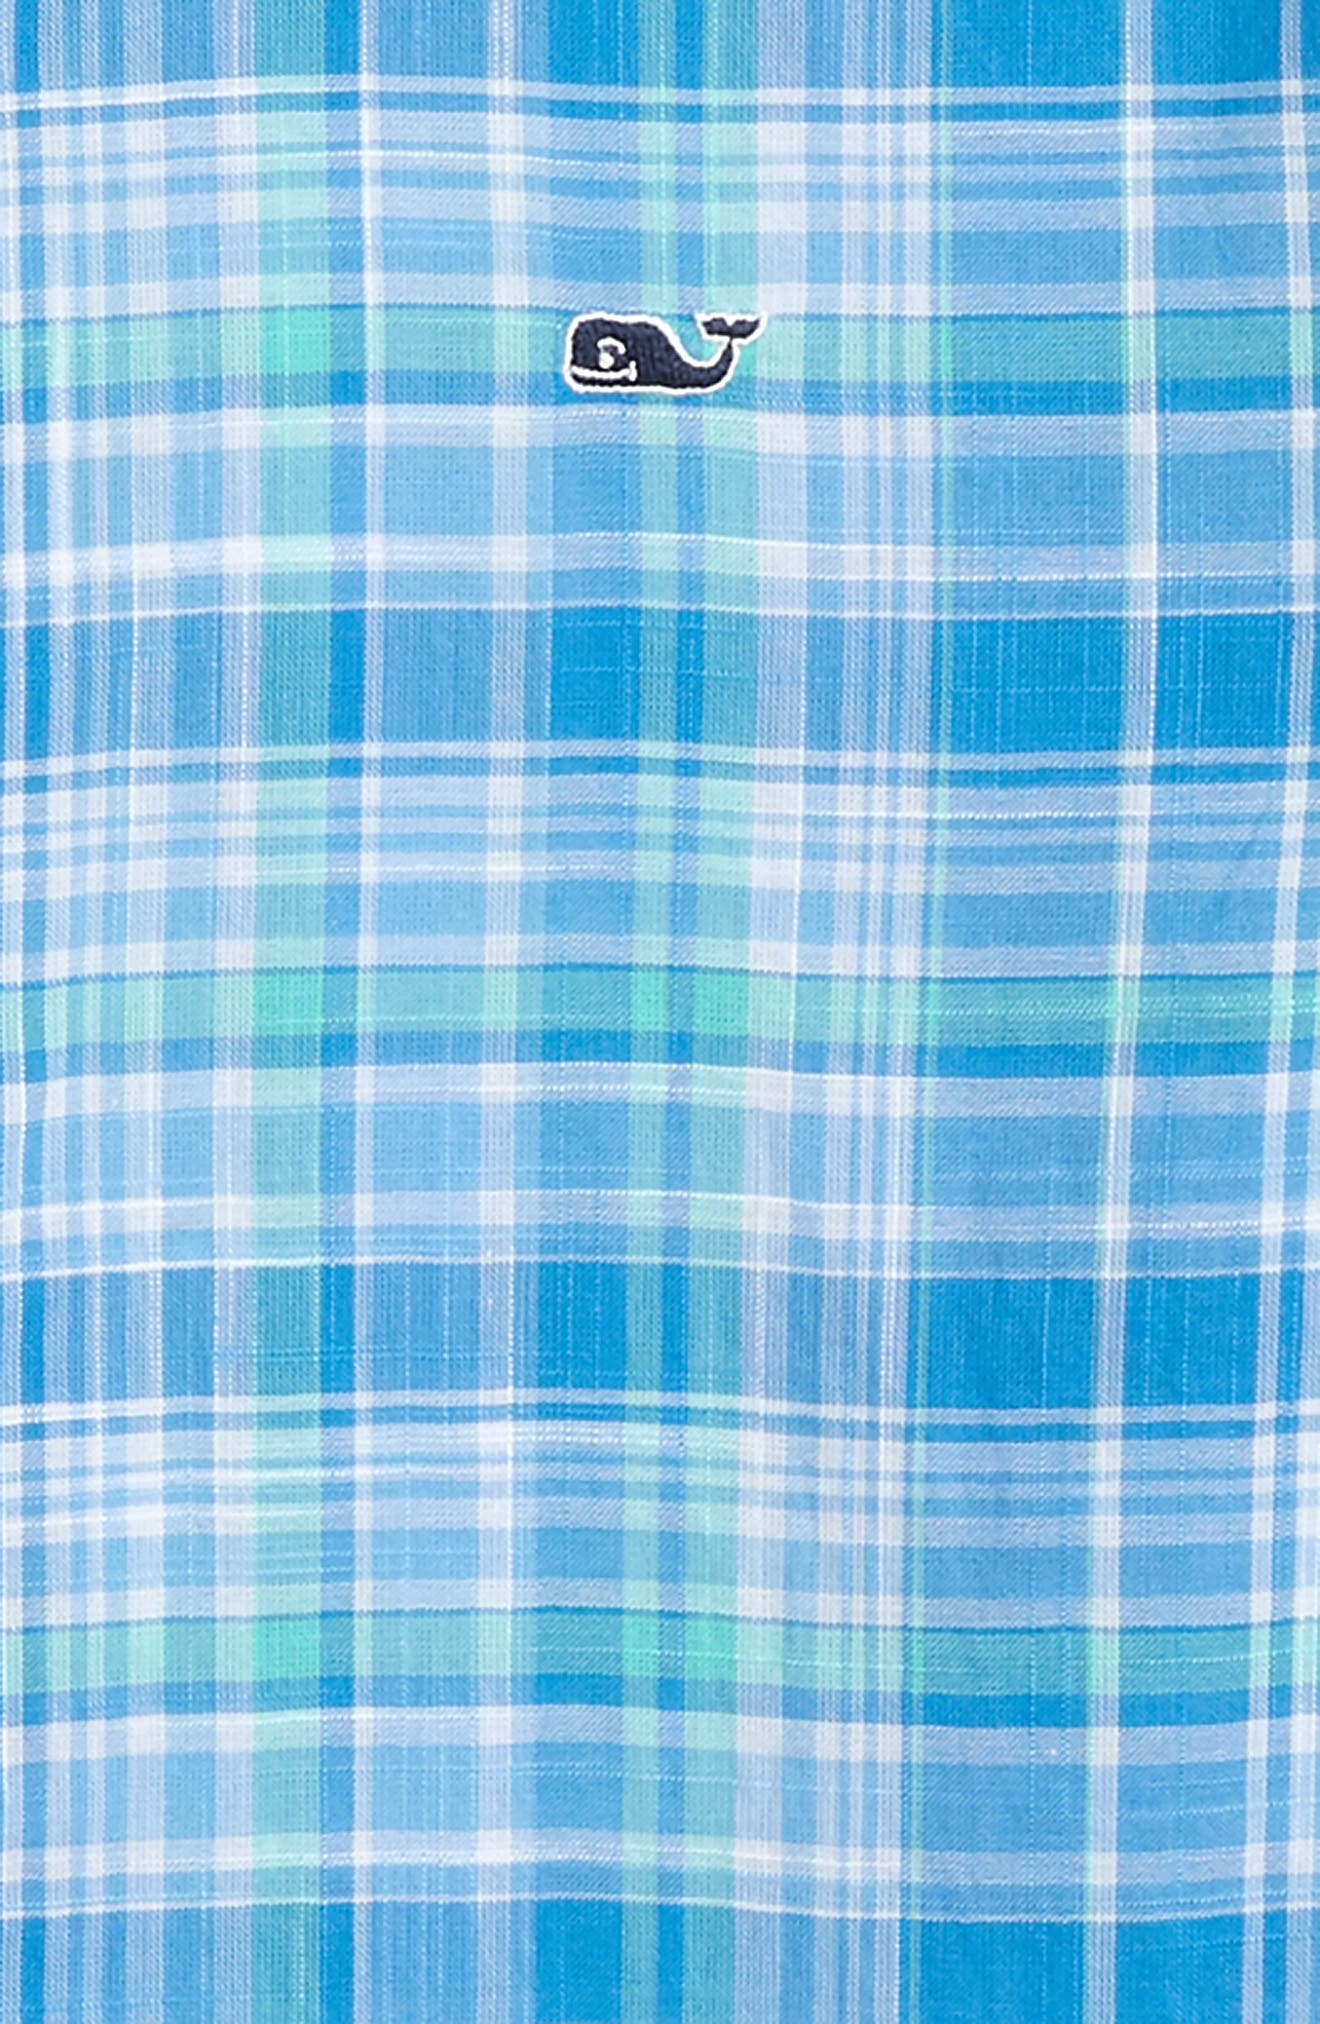 VINEYARD VINES,                             New Providence Beach Plaid Woven Shirt,                             Alternate thumbnail 2, color,                             359